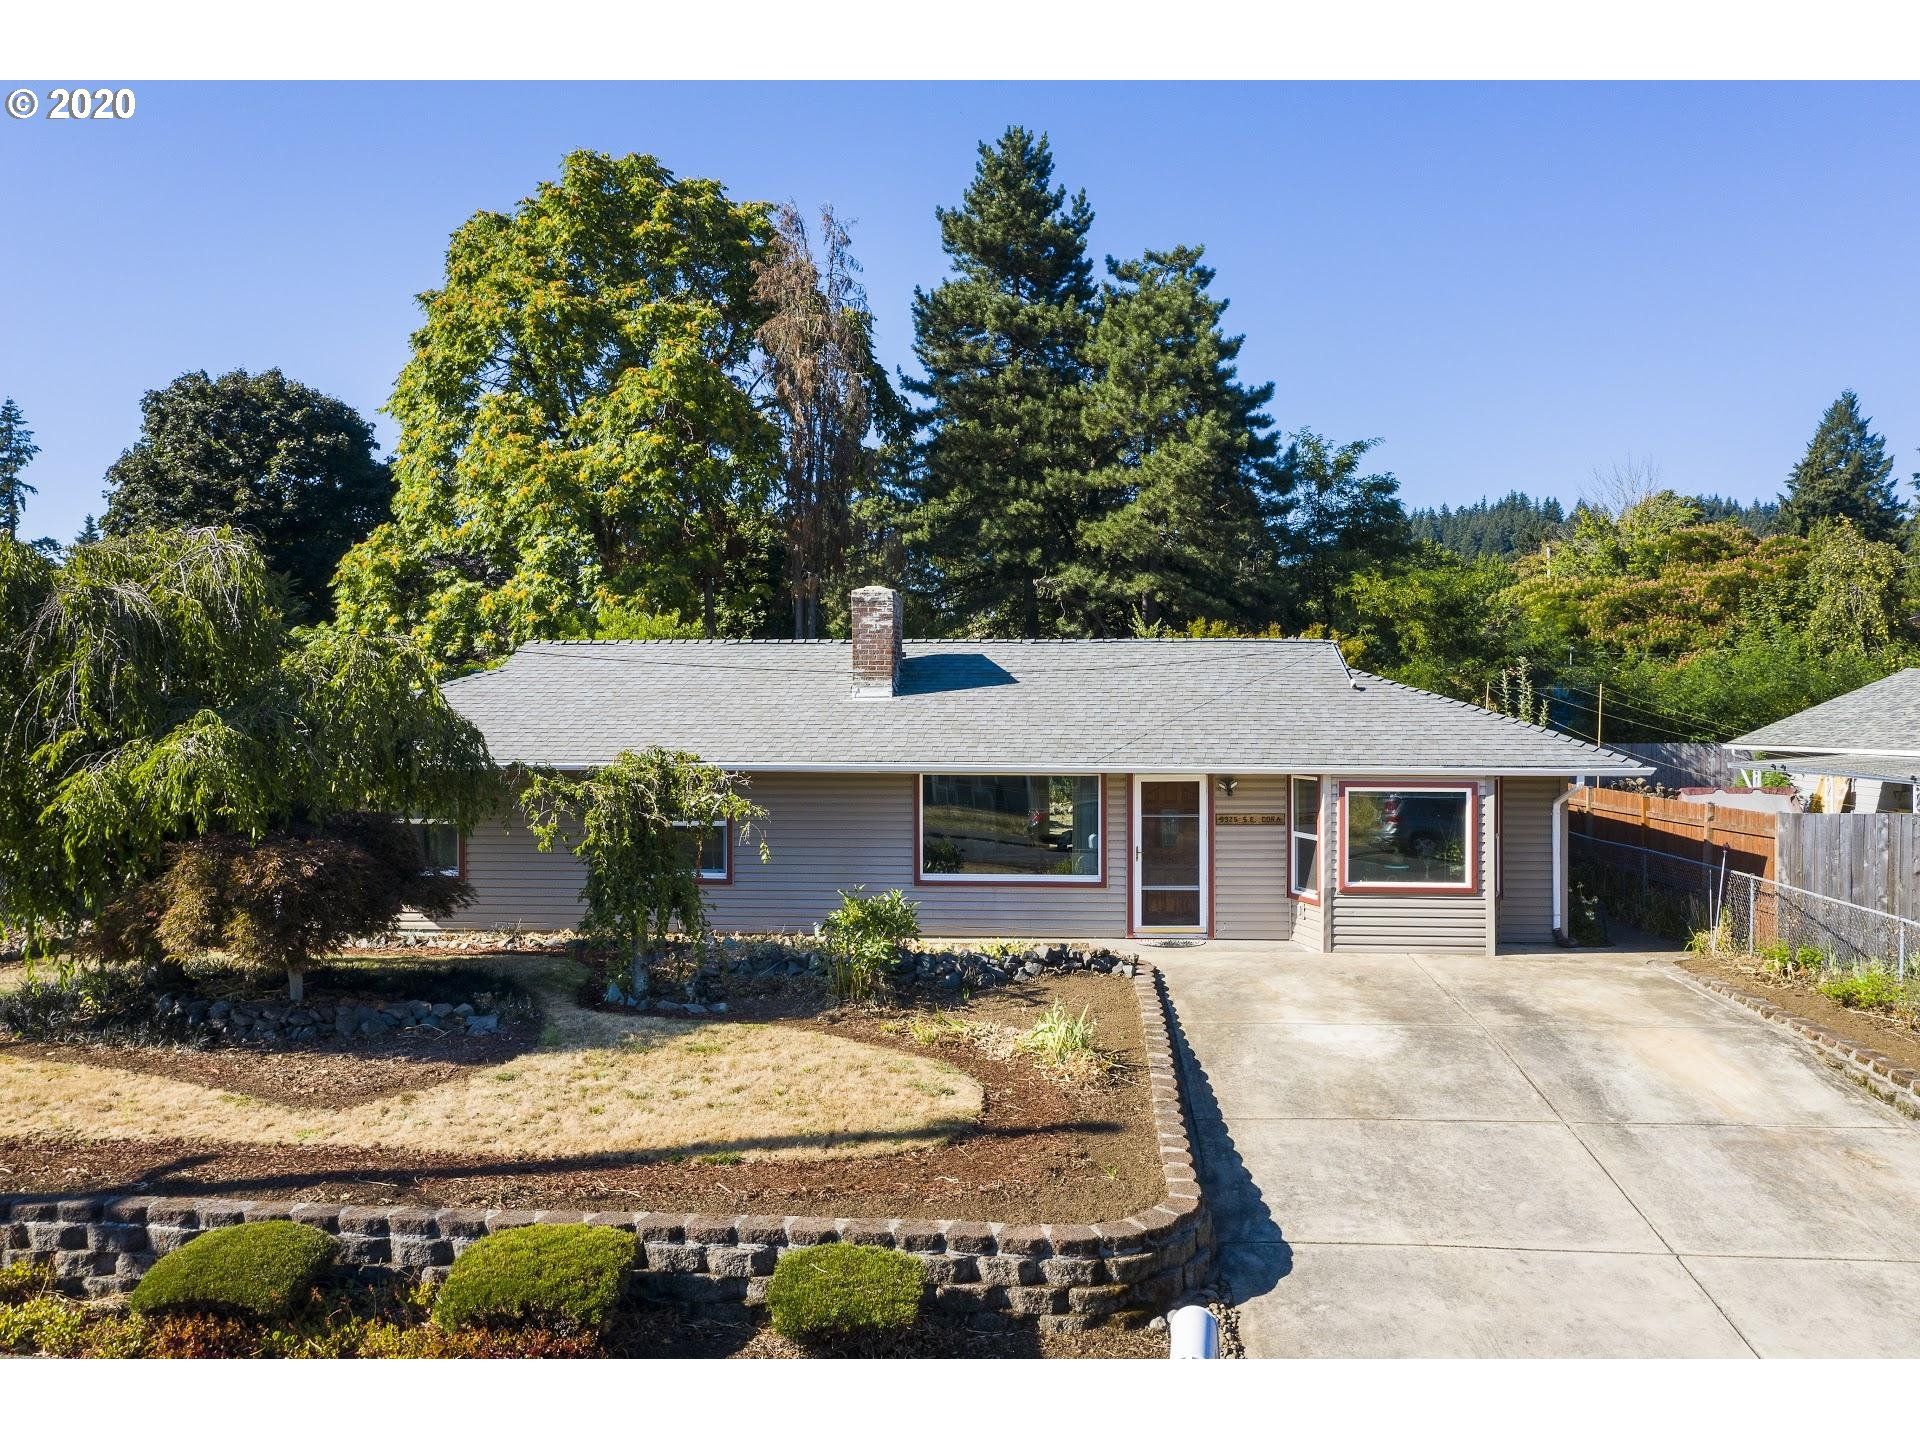 Great starter ranch w/ a gardeners paradise located on a neighborhood greenway!  Create your own oasis!  Remodeled kitchen (2015), newer int/ext paint, triple pane vinyl windows,  W/D/F included.  Large .20 acre lot + RV/boat parking. 2 mins to US26/I205, 3 mins to Eastport Plaza, 13 mins to PDX, 15 mins to downtown. See floor plan included! OPEN SUN (1-3PM)